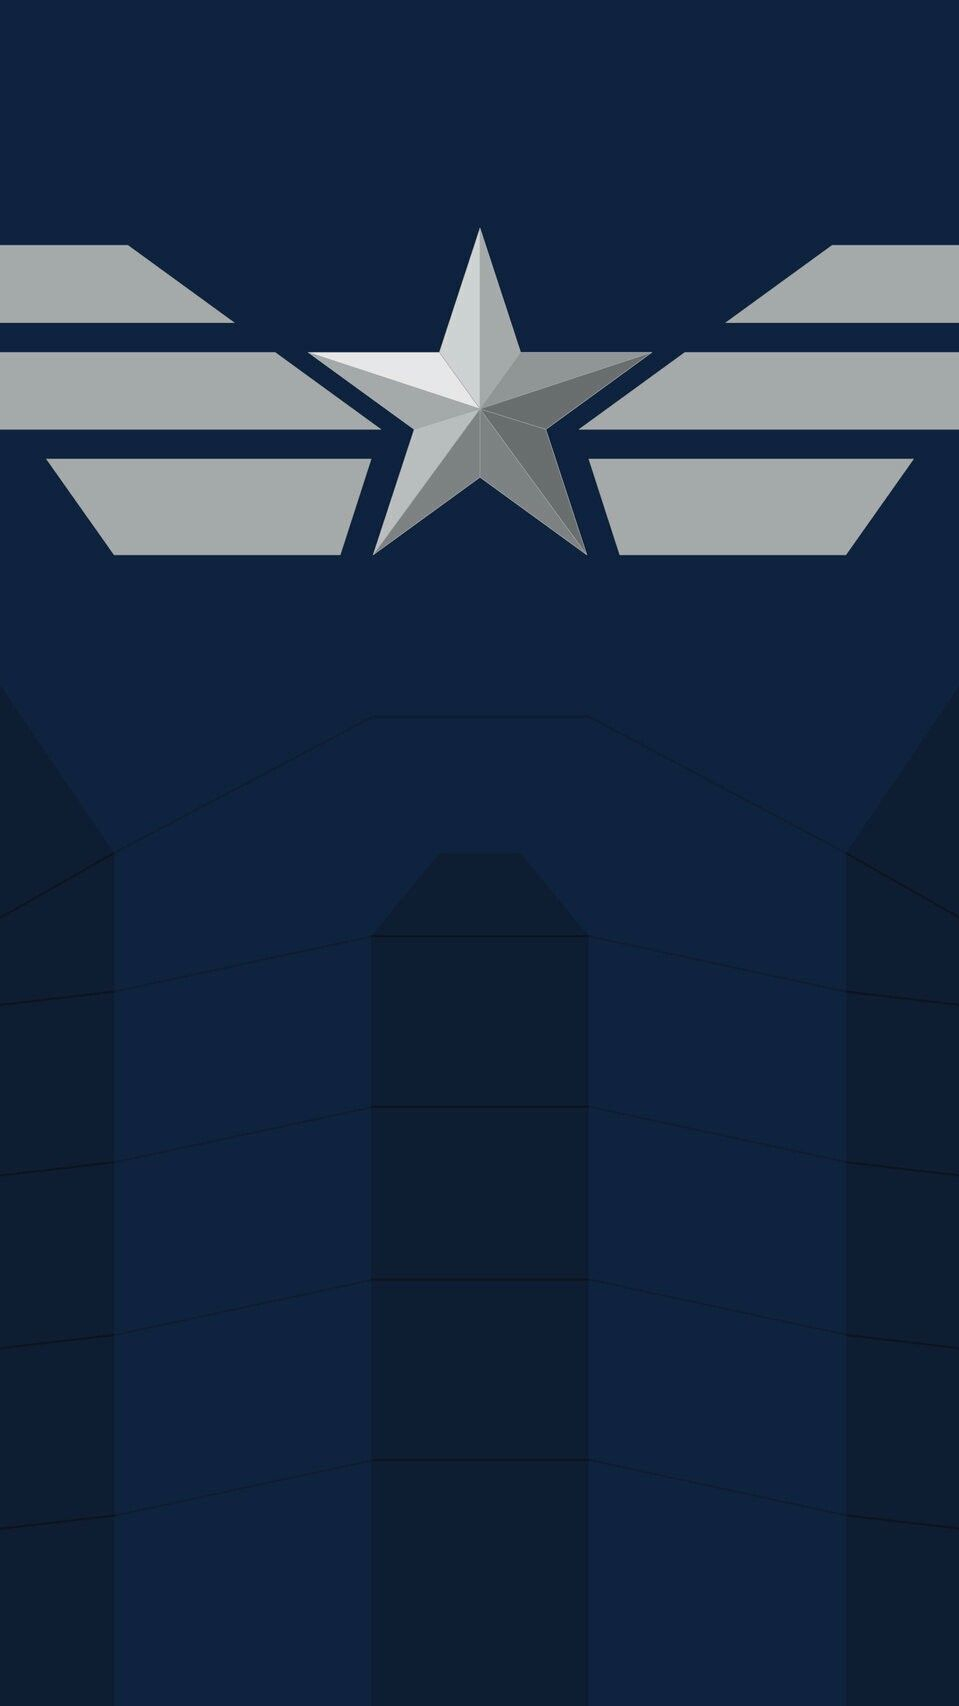 Captain America Symbol iPhone Wallpaper